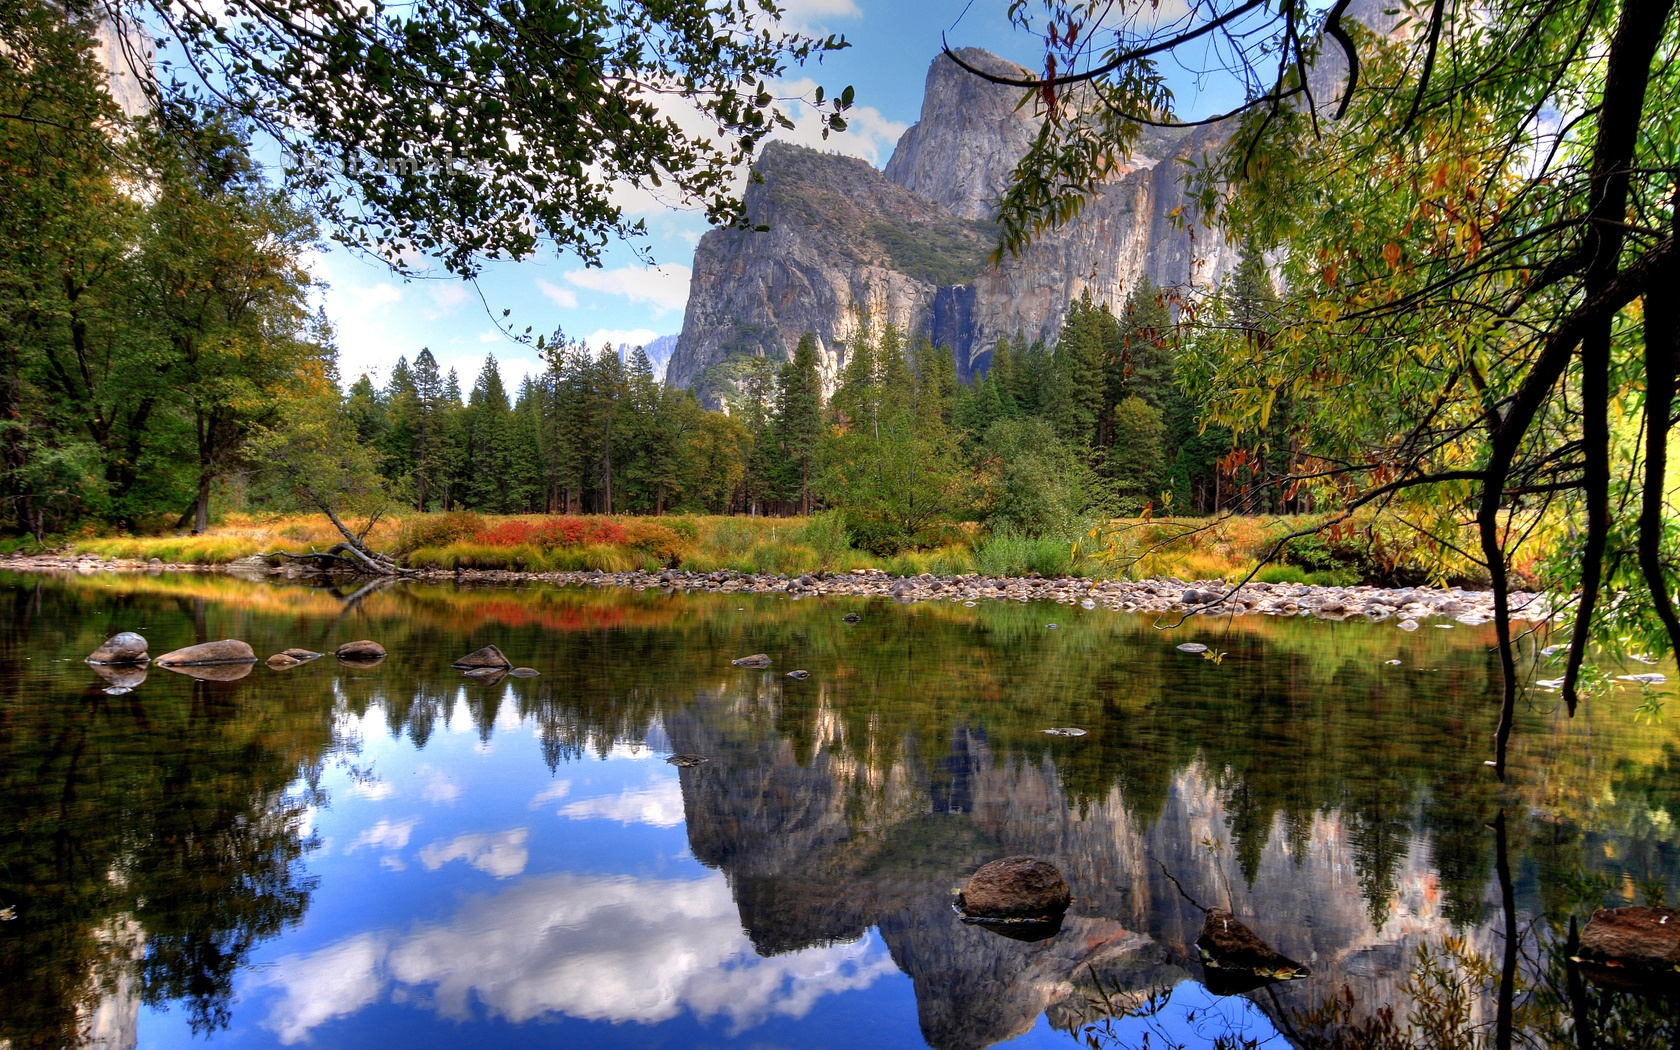 Yosemite National Park Wallpapers   1680x1050   1131901 1680x1050